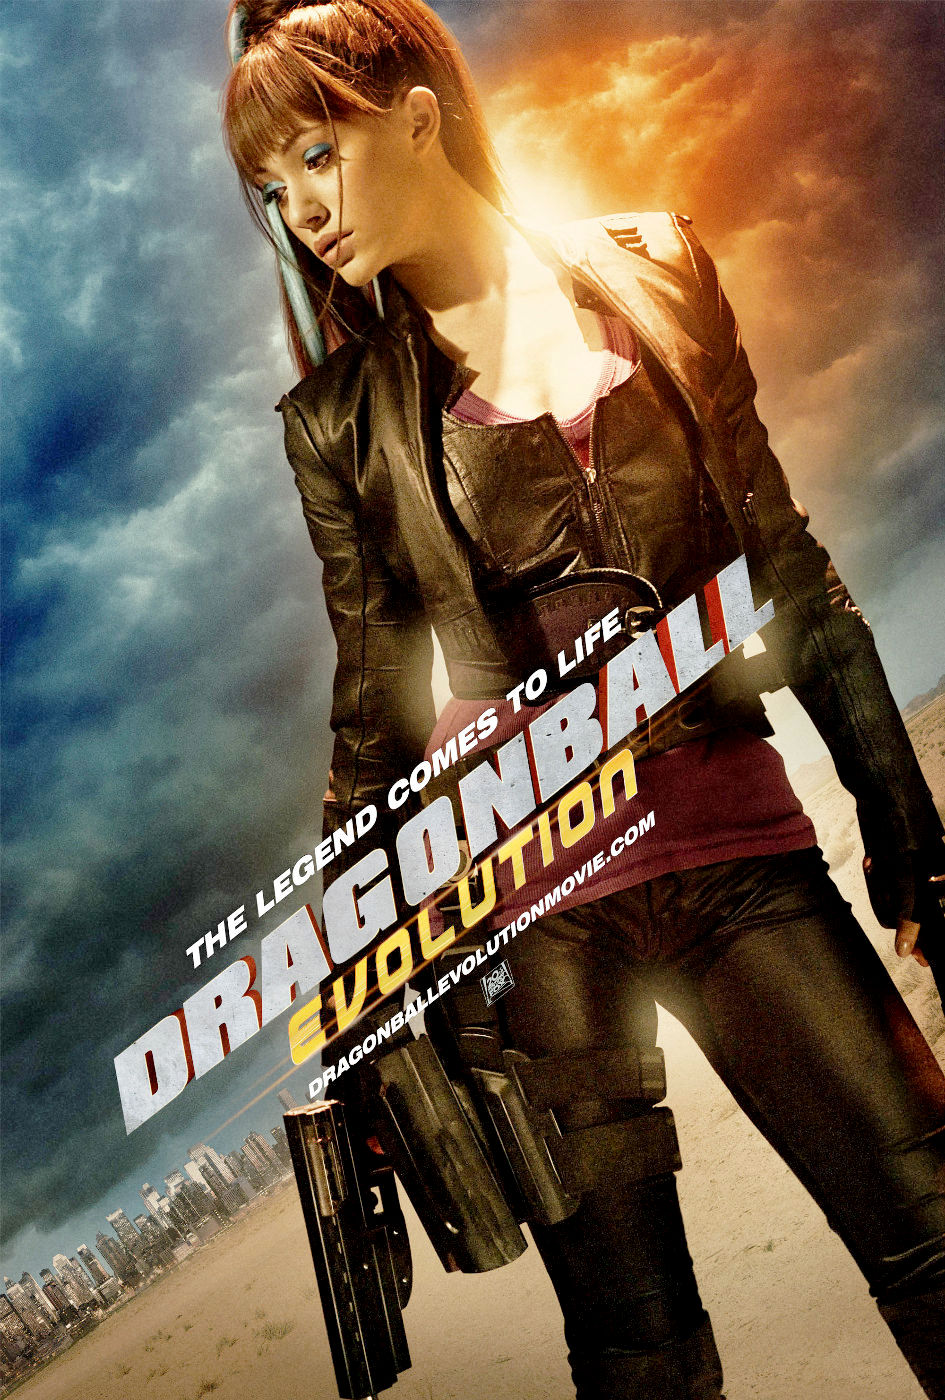 dragonball_evolution_poster_2009_01.jpg